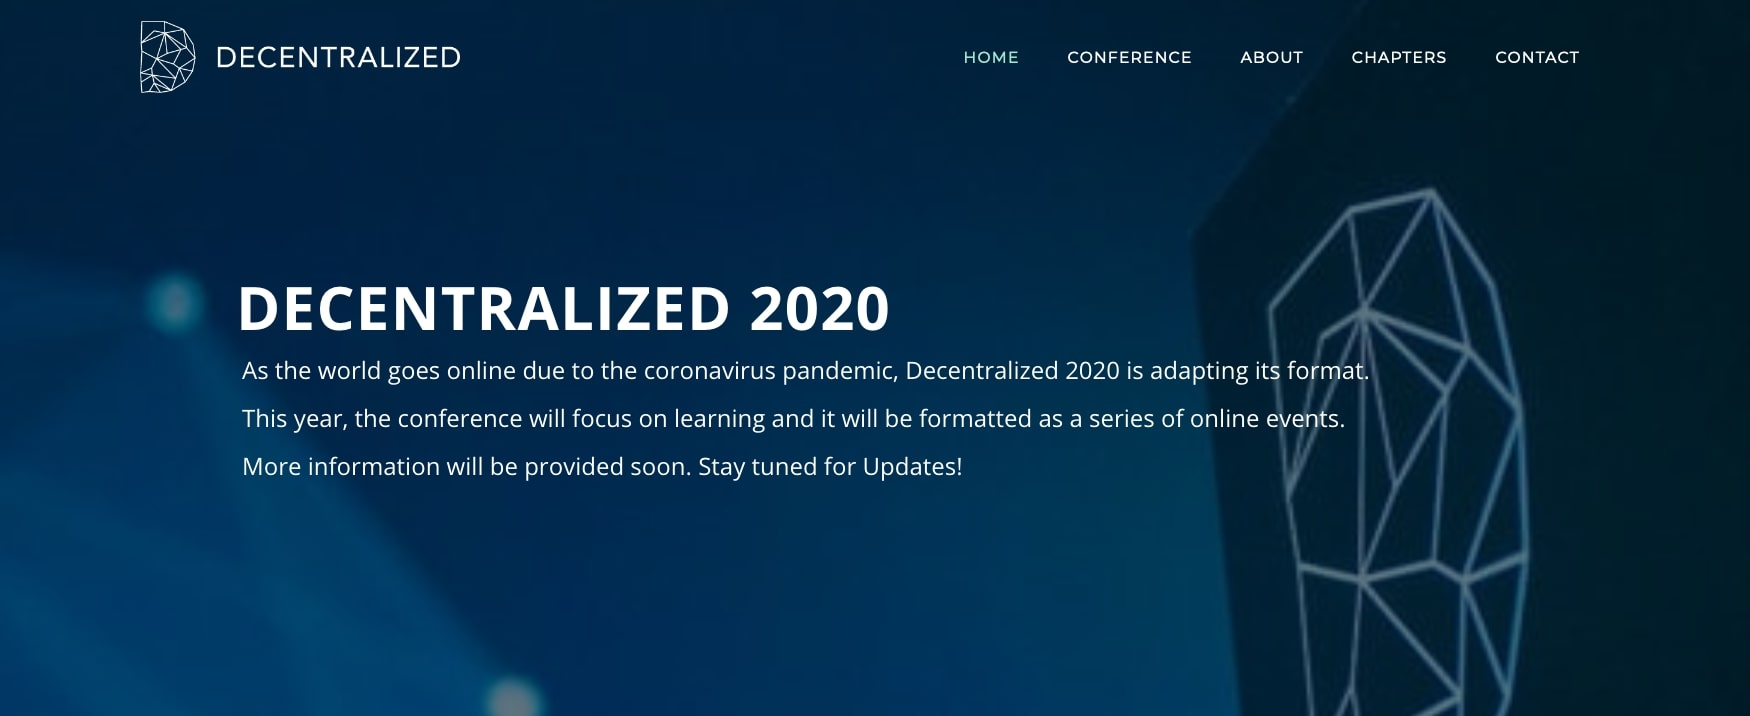 Decentralized 2020